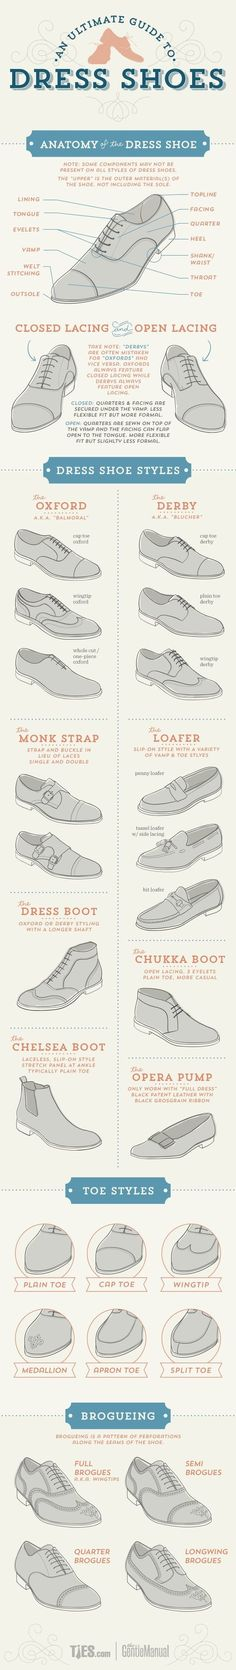 Types of male dress shoes